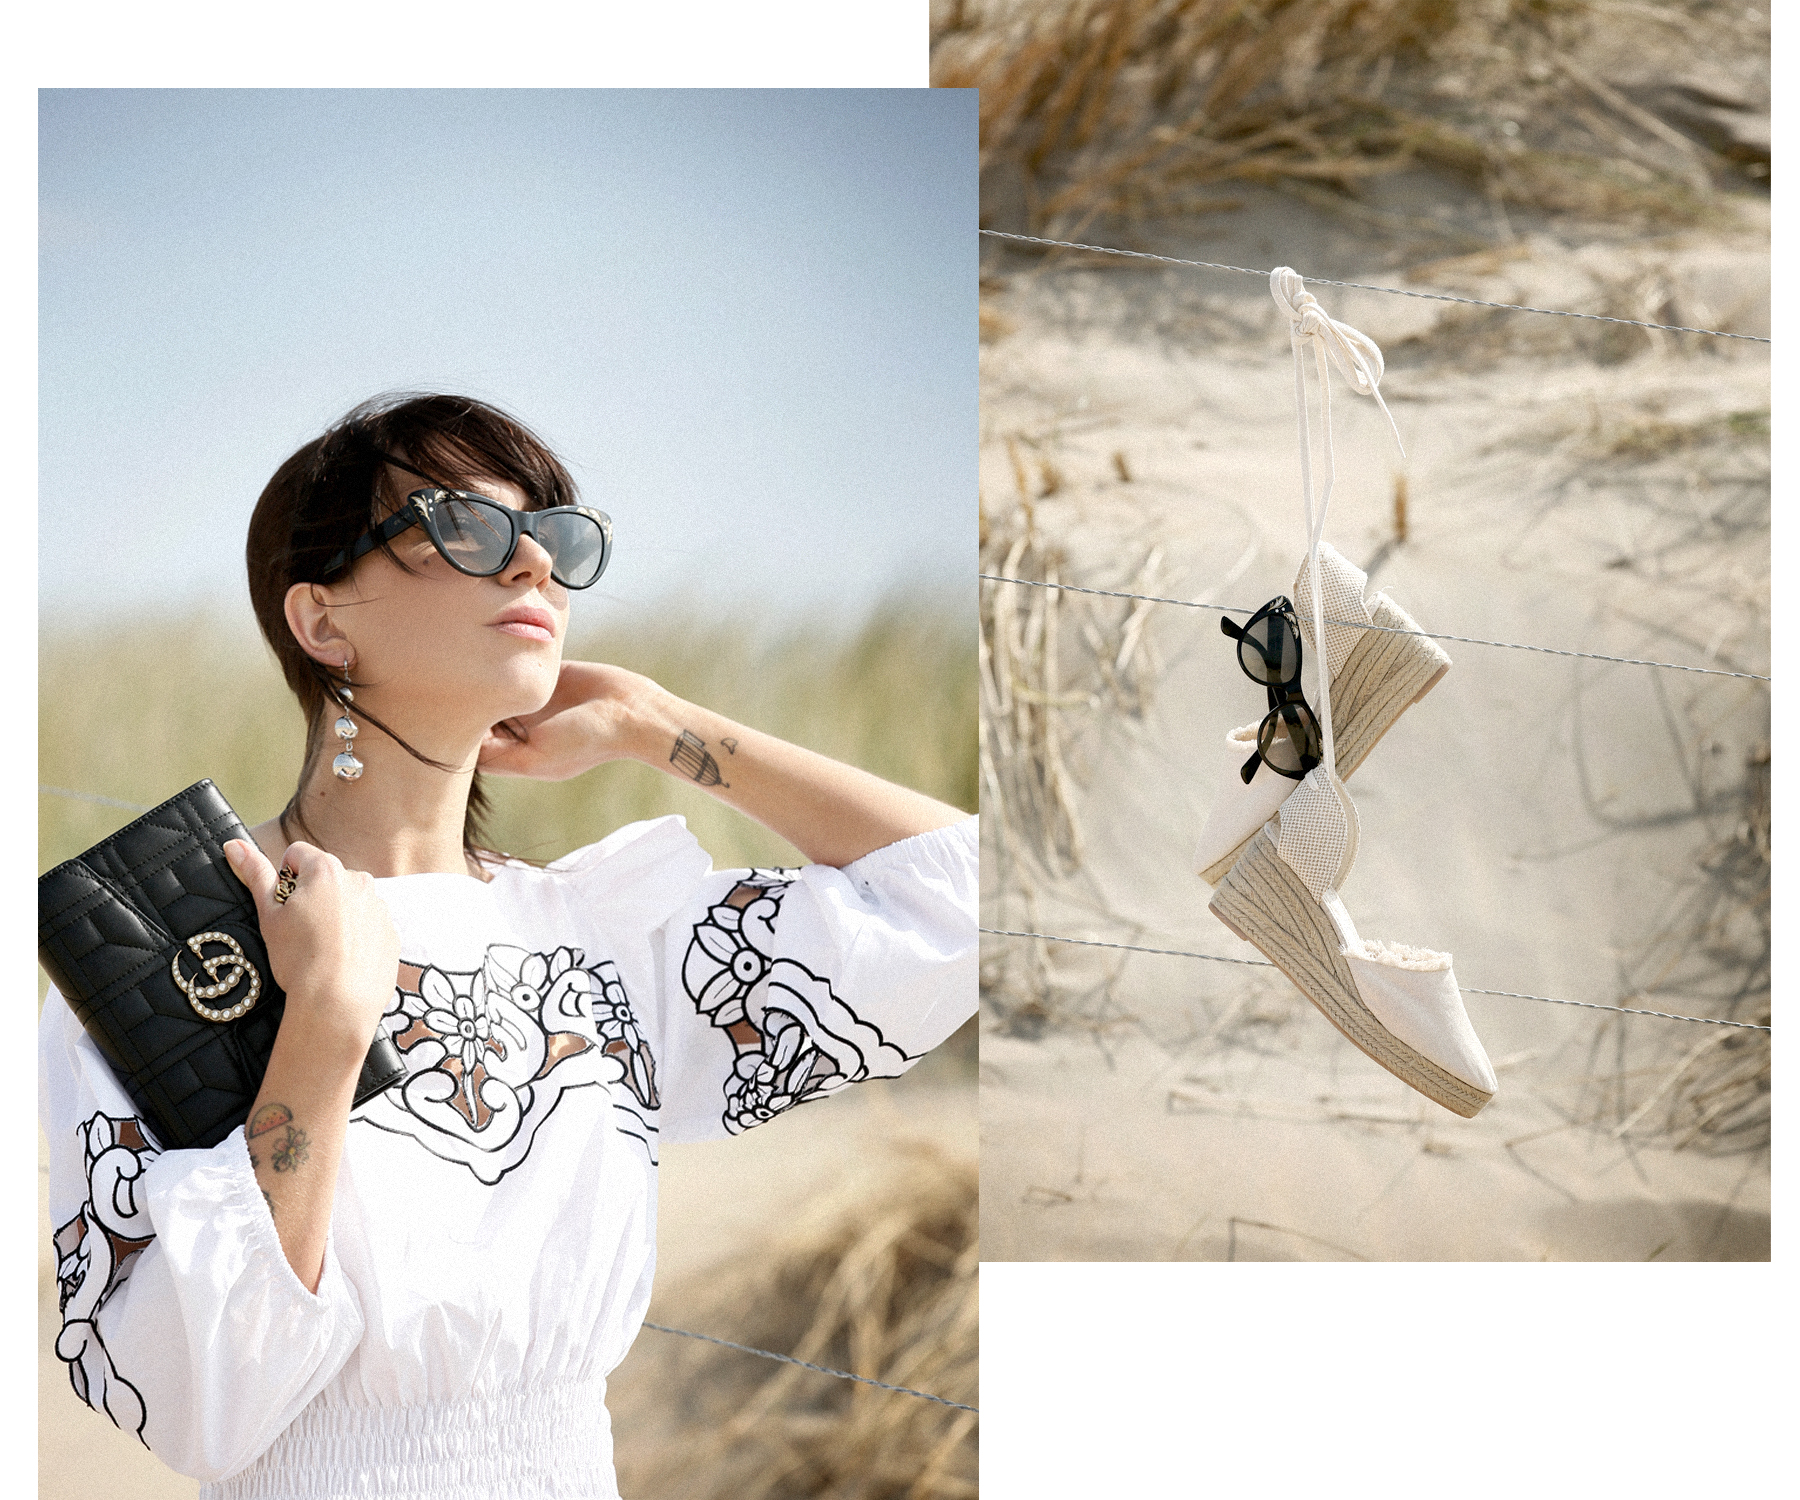 outfit breuninger pinko dress kleid gucci marmont clutch bag chain woc sunglasses blogger fashionblogger white dressing beach dunes summer holiday cats & dogs blog modeblogger ricarda schernus düsseldorf styleblogger sea ocean photography 5